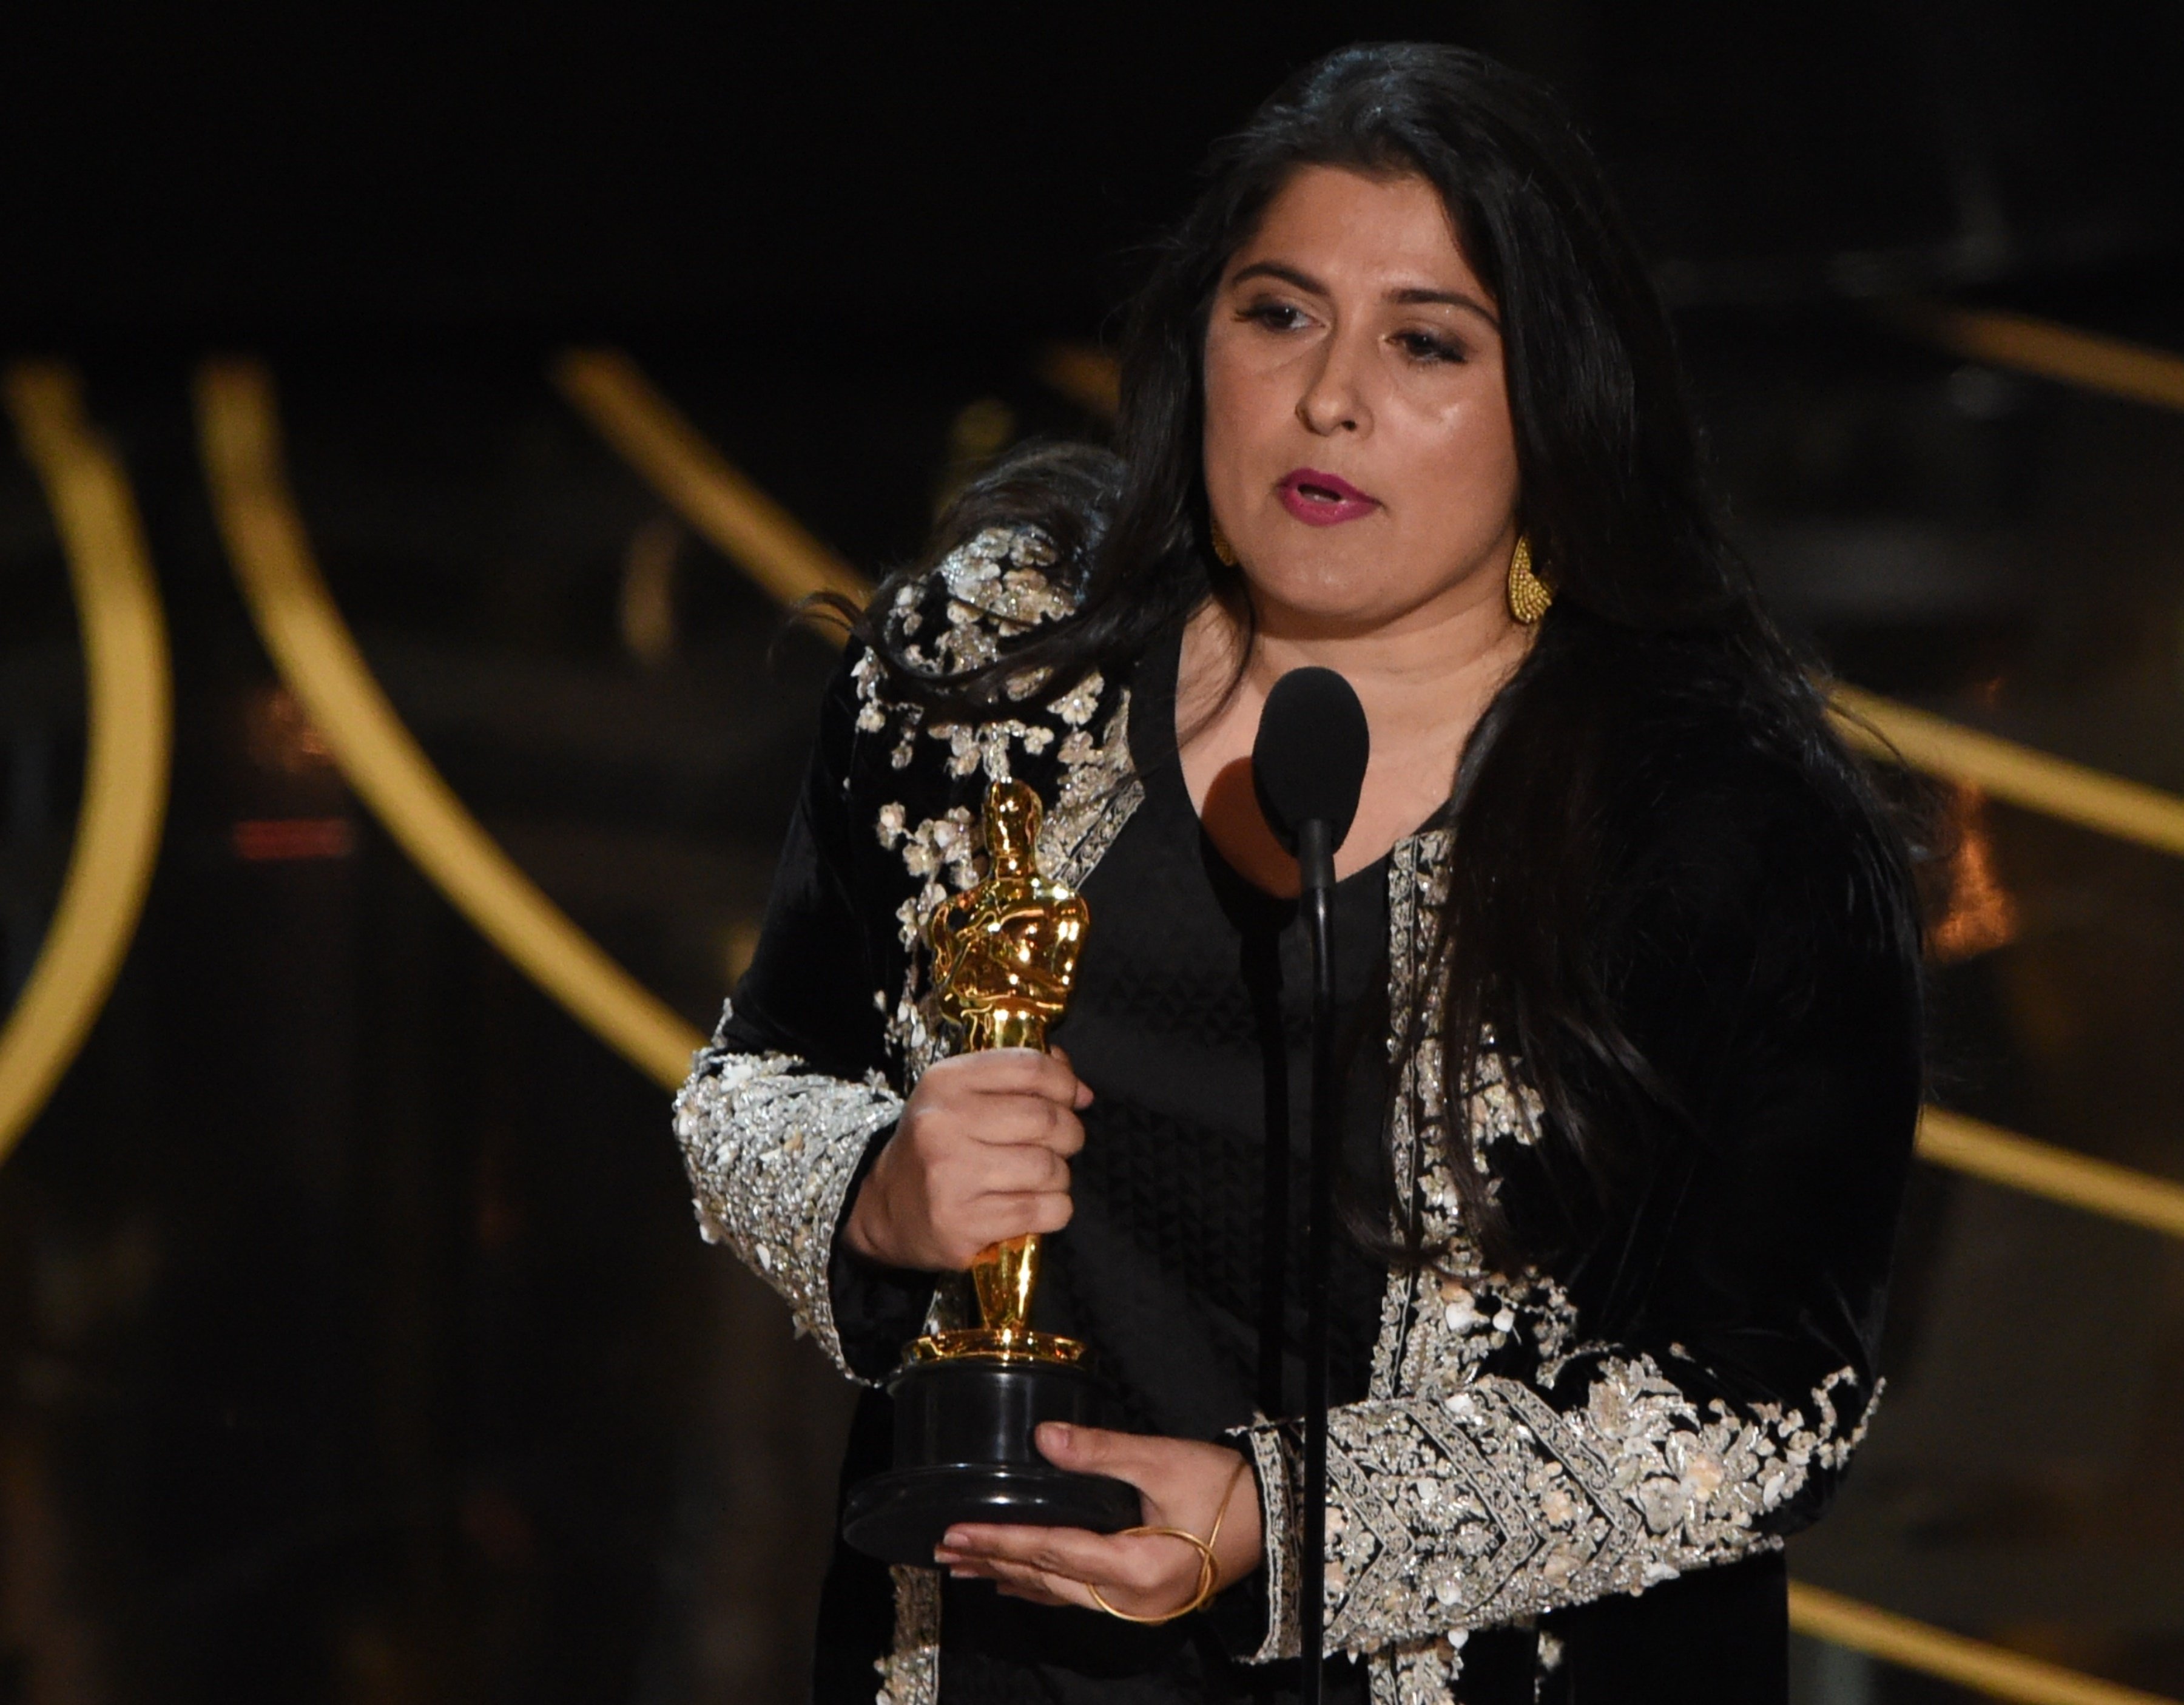 Oscars 2016: Lady Gaga stands against sexual assault in performance